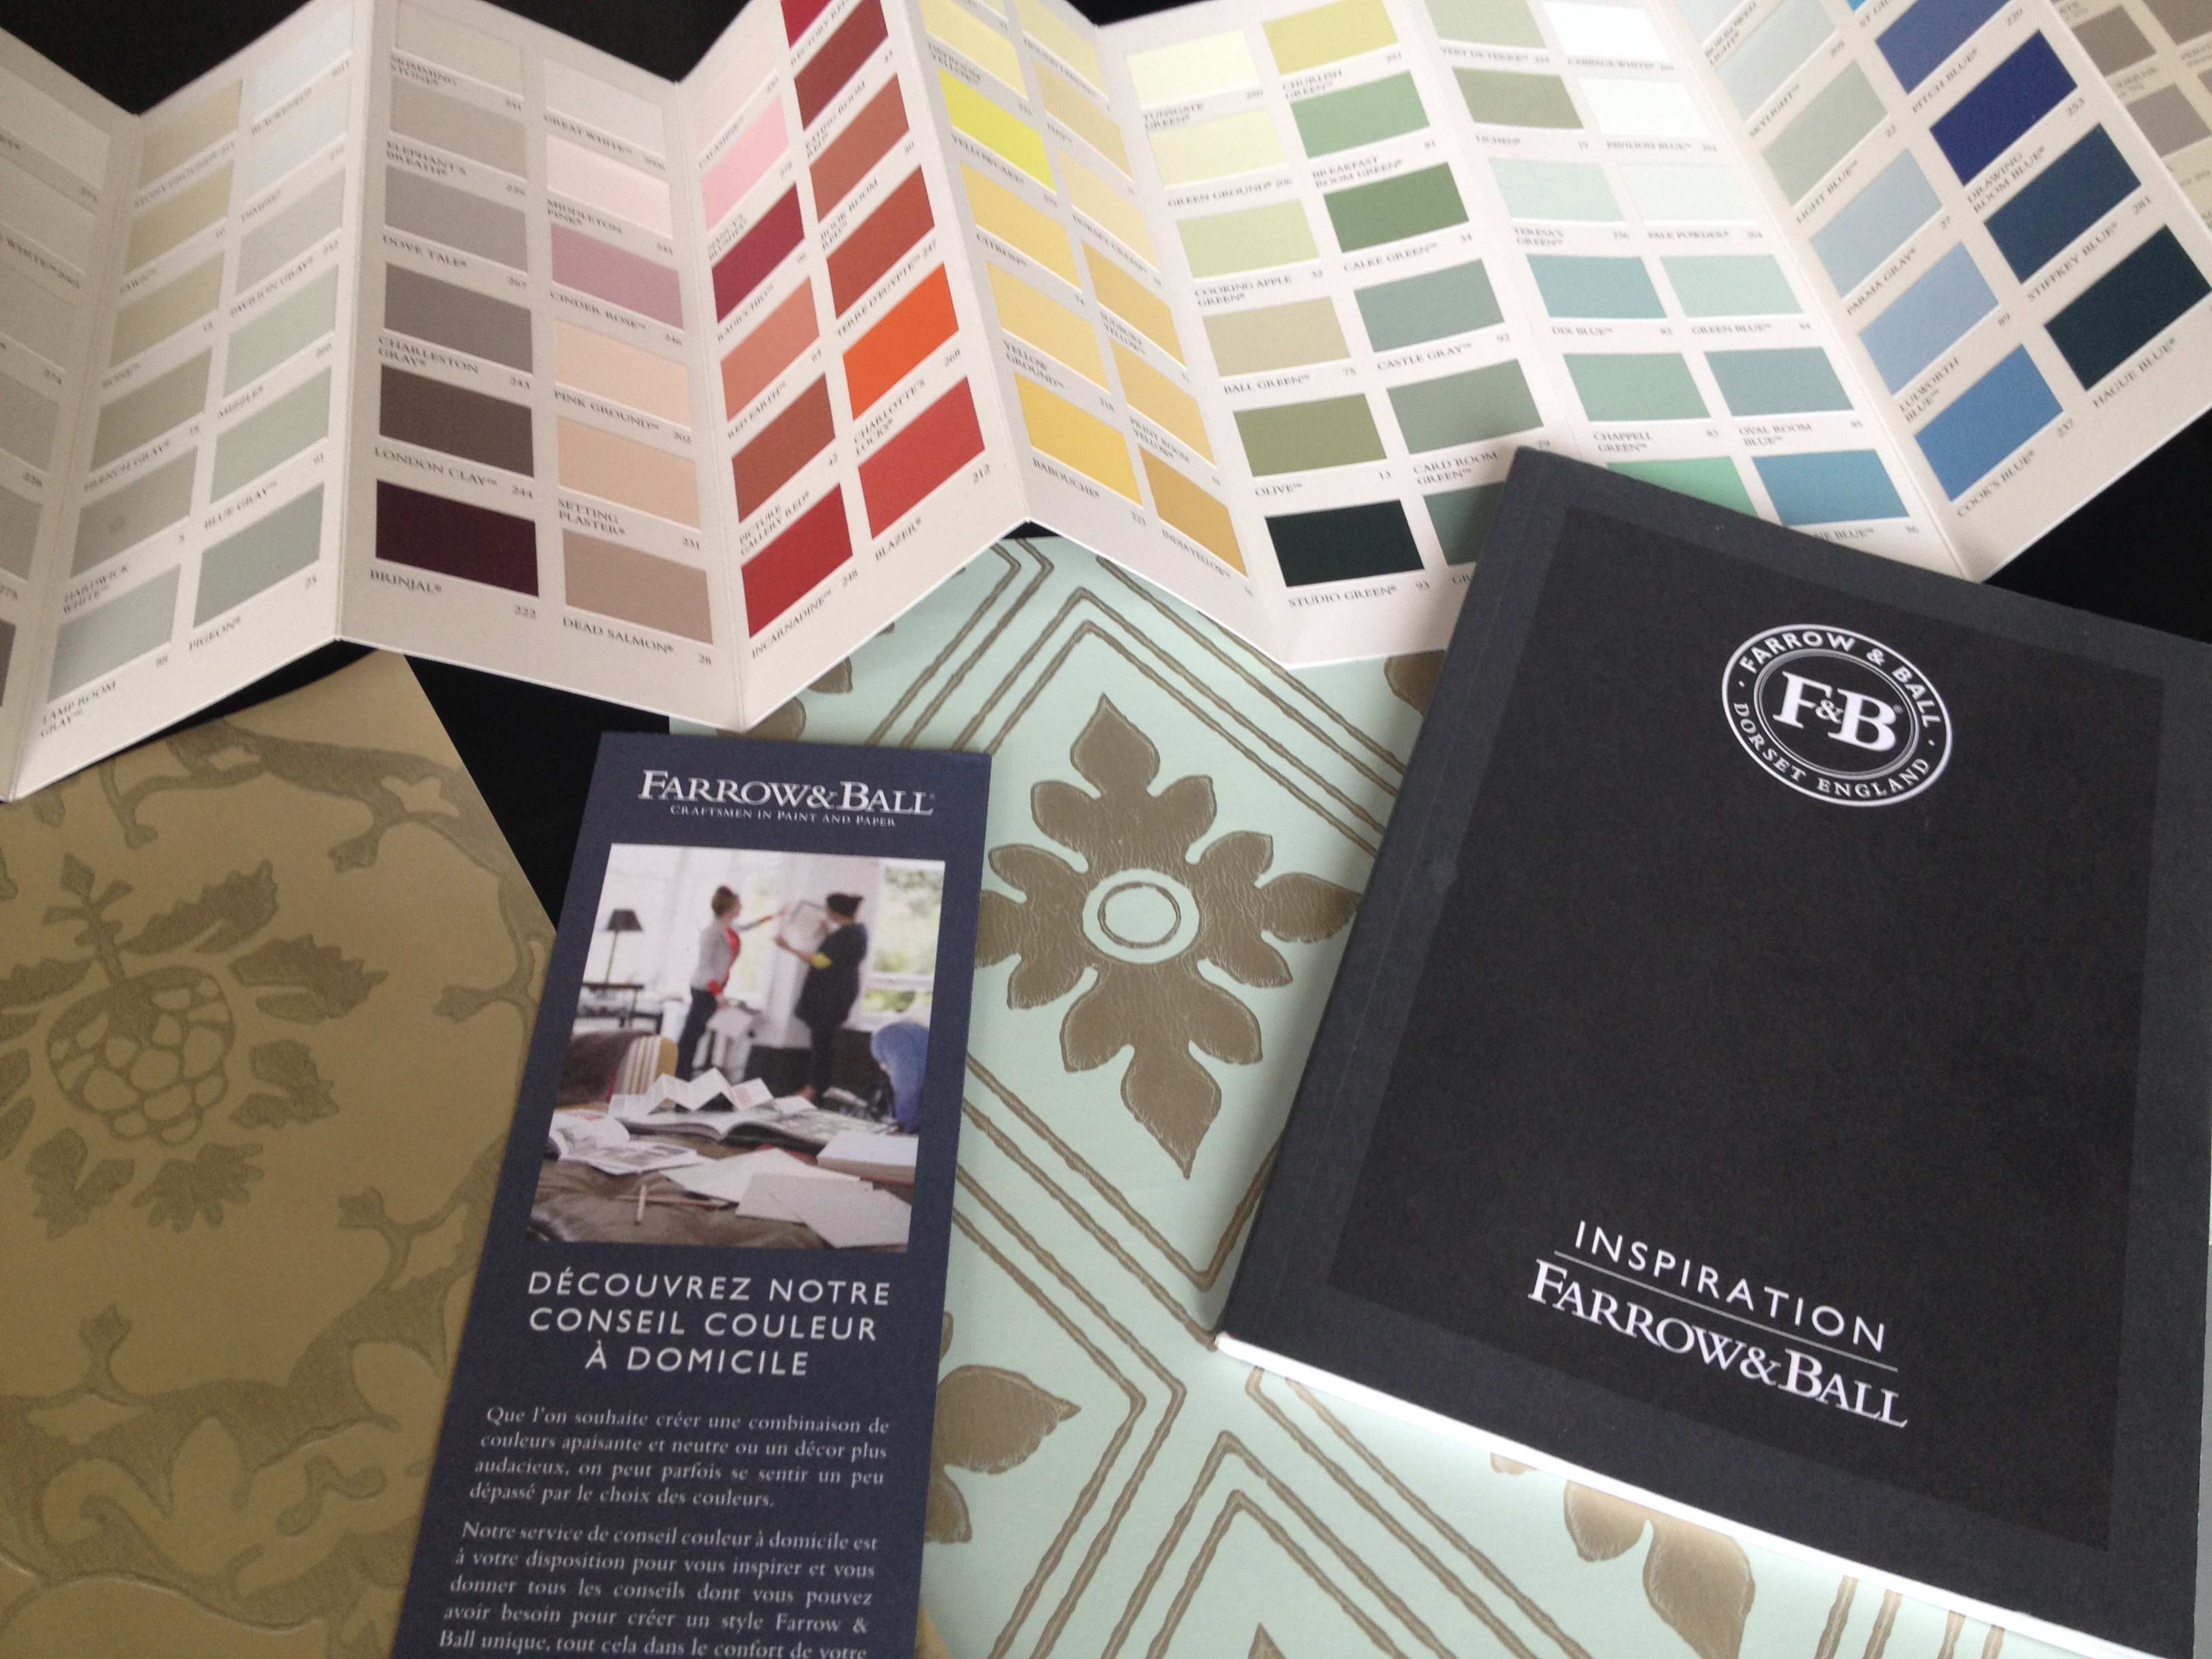 Prix Peinture Farrow And Ball Peinture Farrow And Ball Prix 0613727706 Devis M2 Tarif